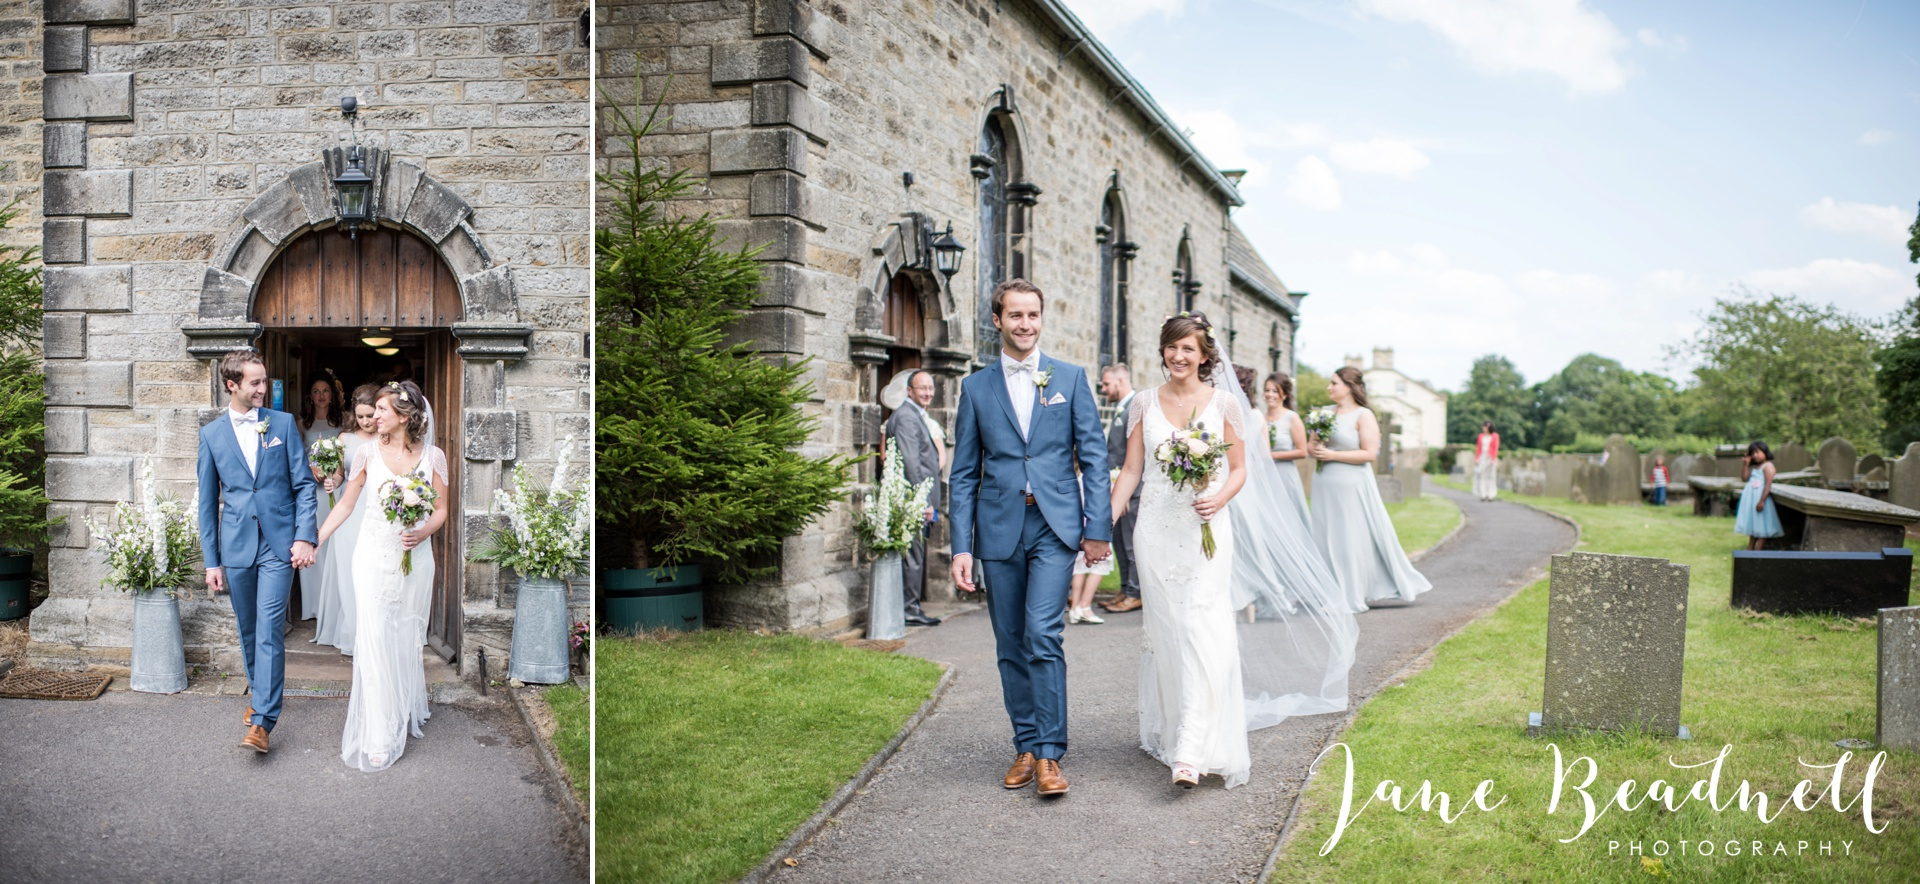 Jane Beadnell fine art wedding photographer Leeds_0051